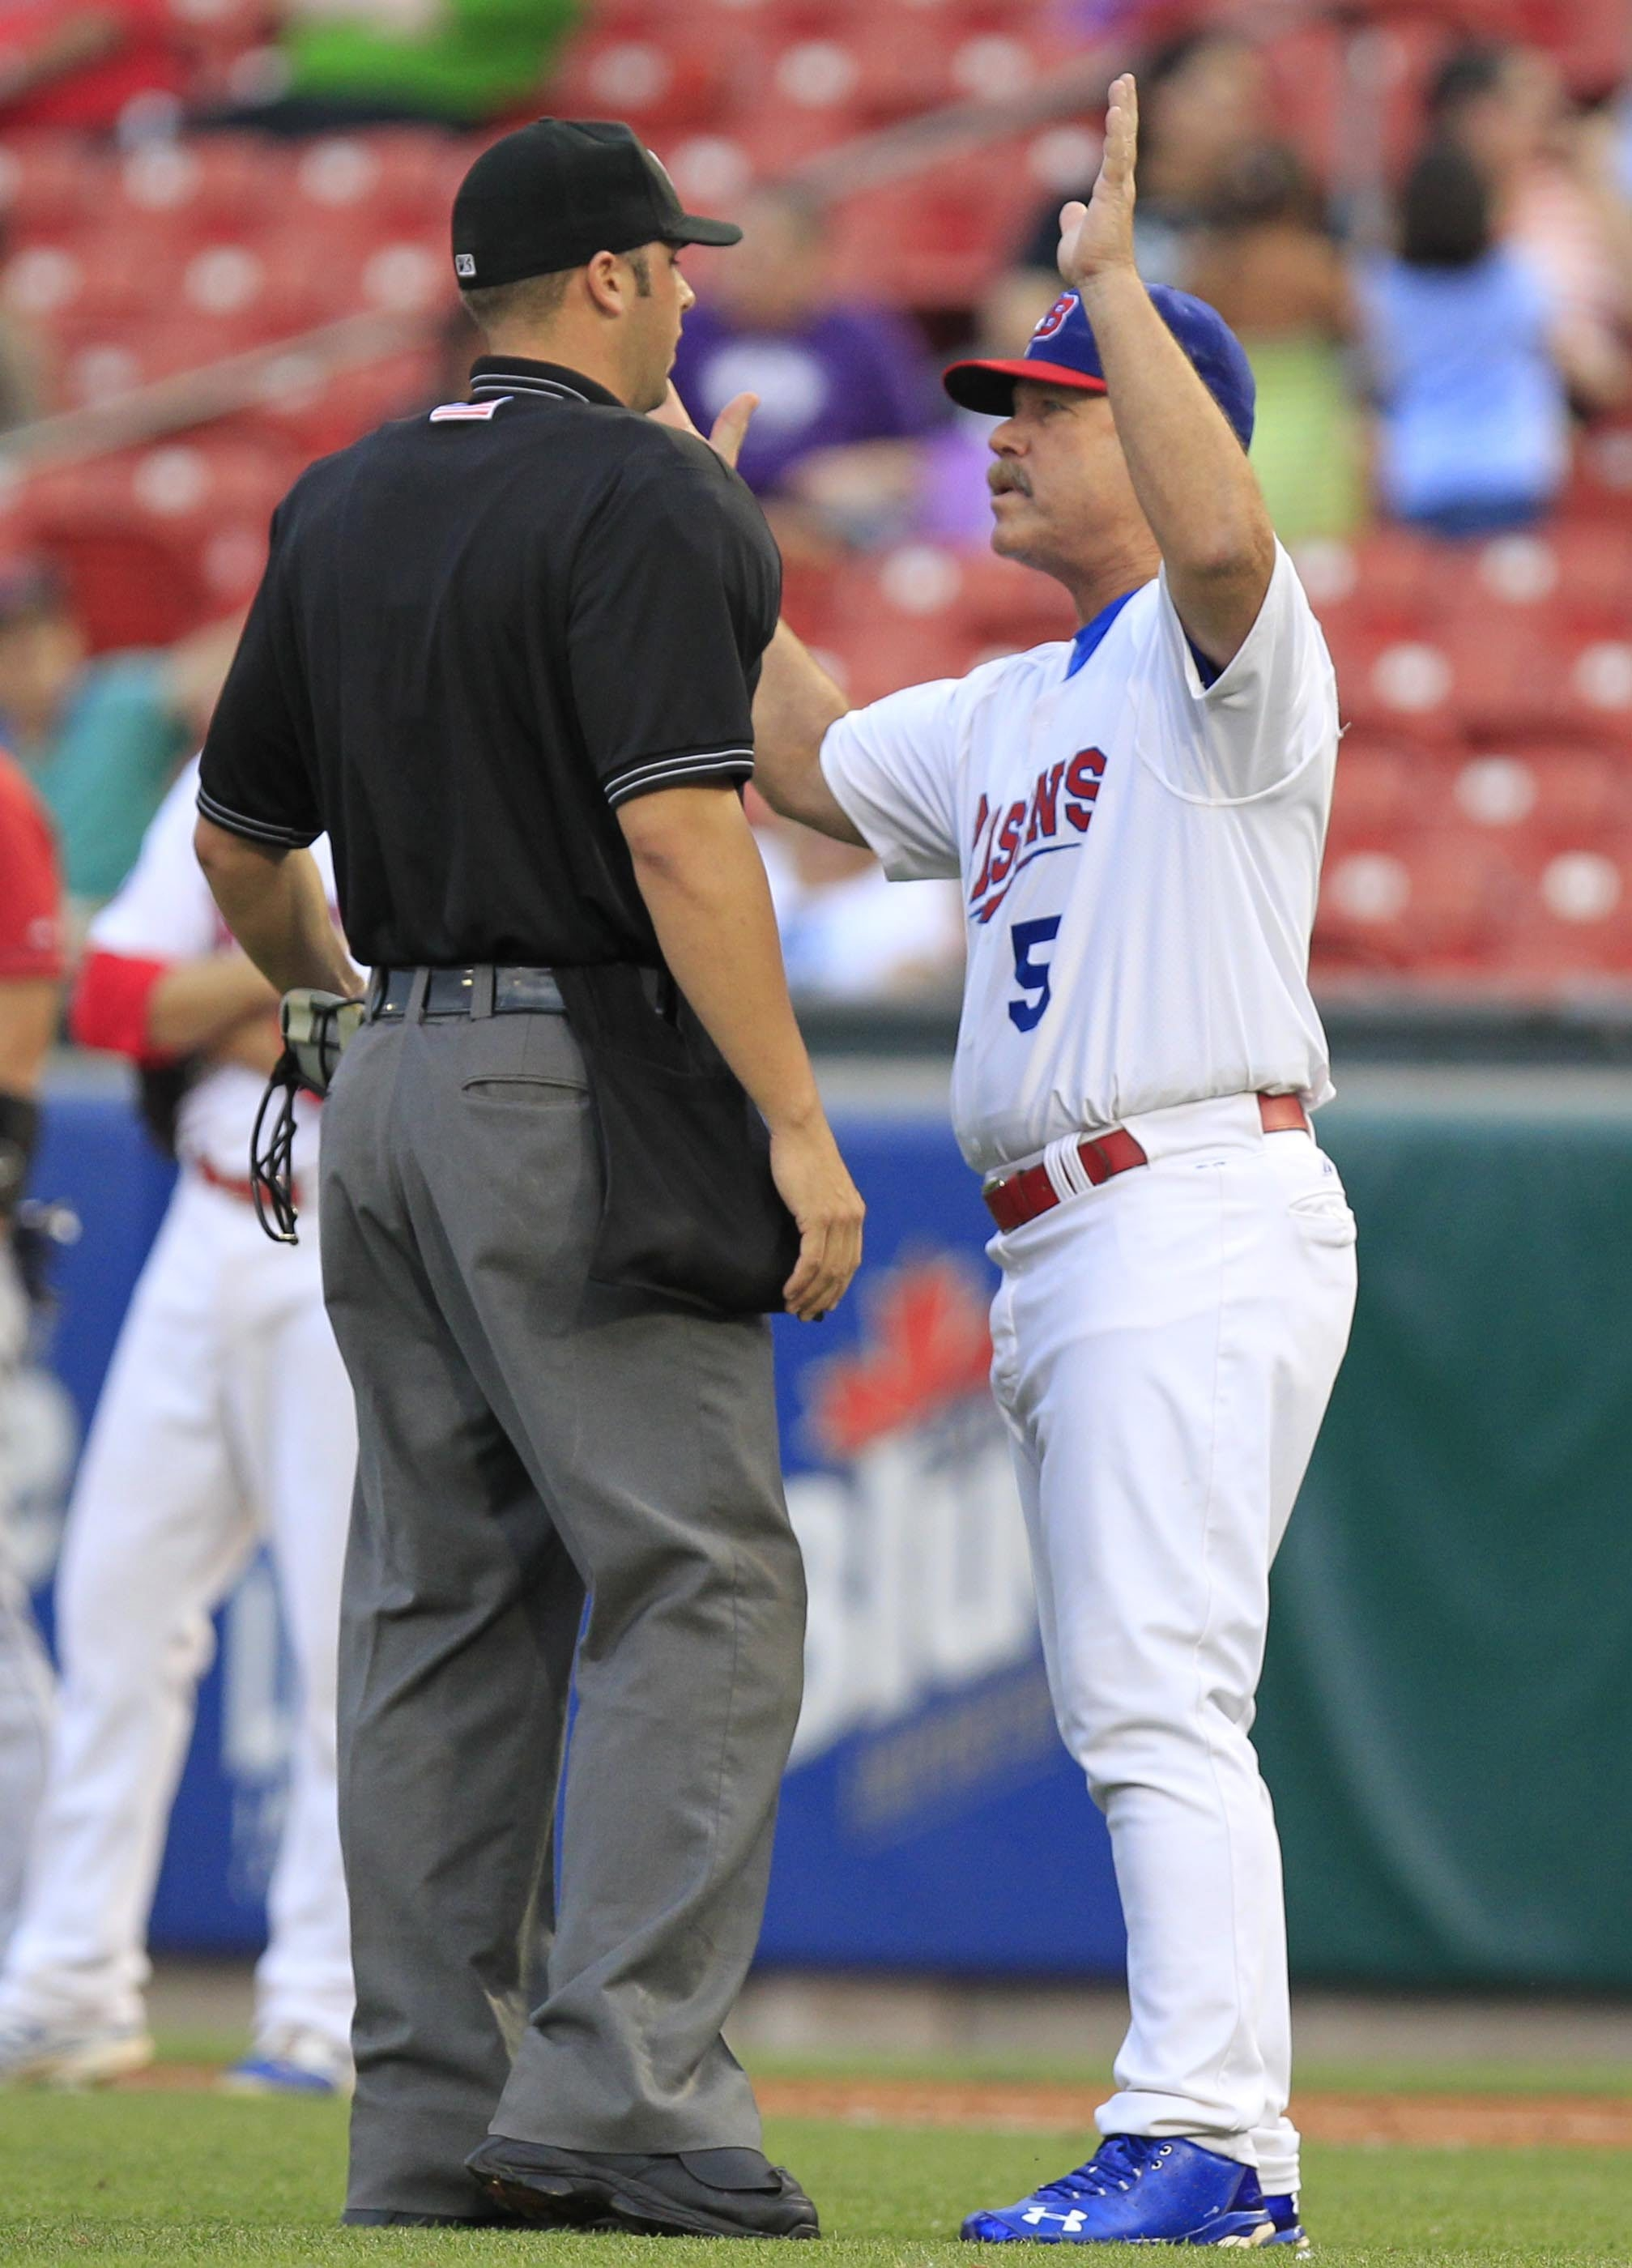 Buffalo Bisons manager Gary Allenson argues with Home plate umpire Dave Soucy, that a Columbus Clippers player interfered on a double play attempt during third inning action at Coca-Cola Field on Tuesday, June 24, 2014. (Harry Scull Jr. /Buffalo News)